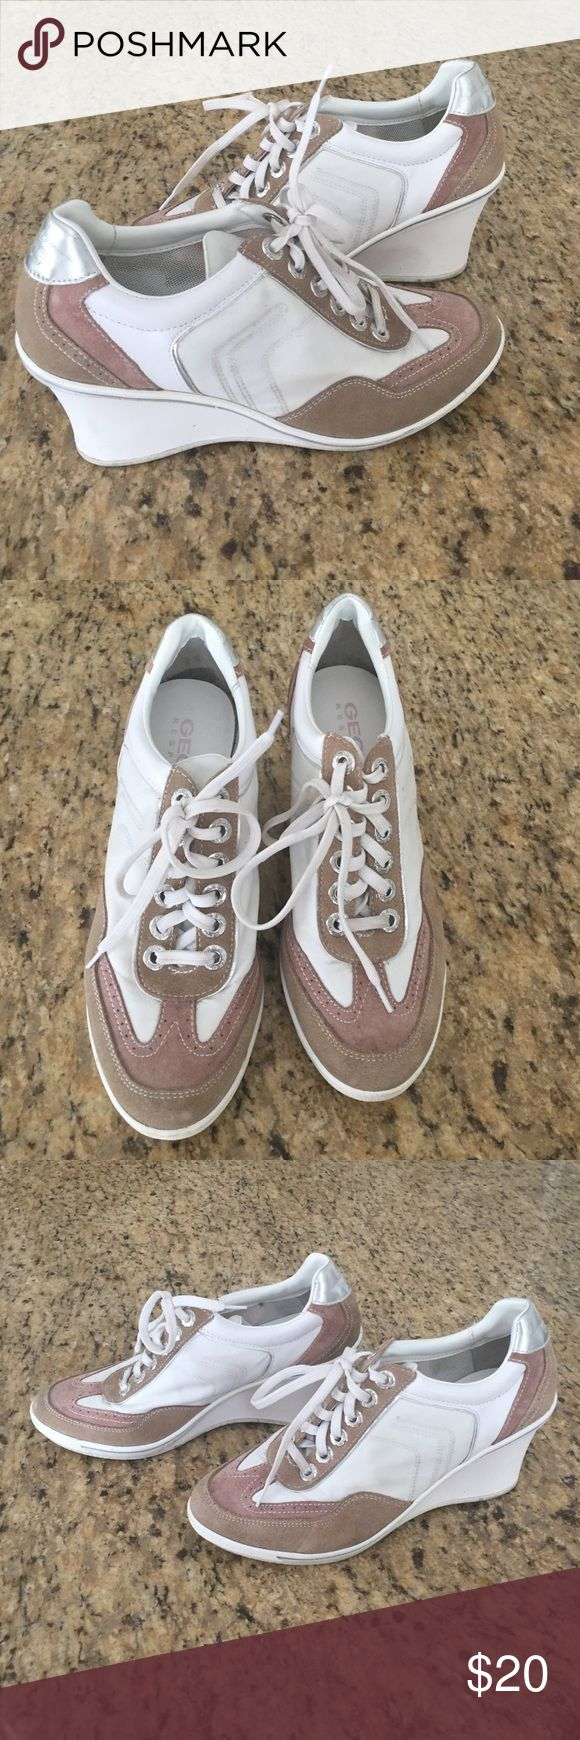 Wedge tennis shoes Stylish wedge tennis shoes white and tan and silver hardly worn Geox Shoes Sneakers